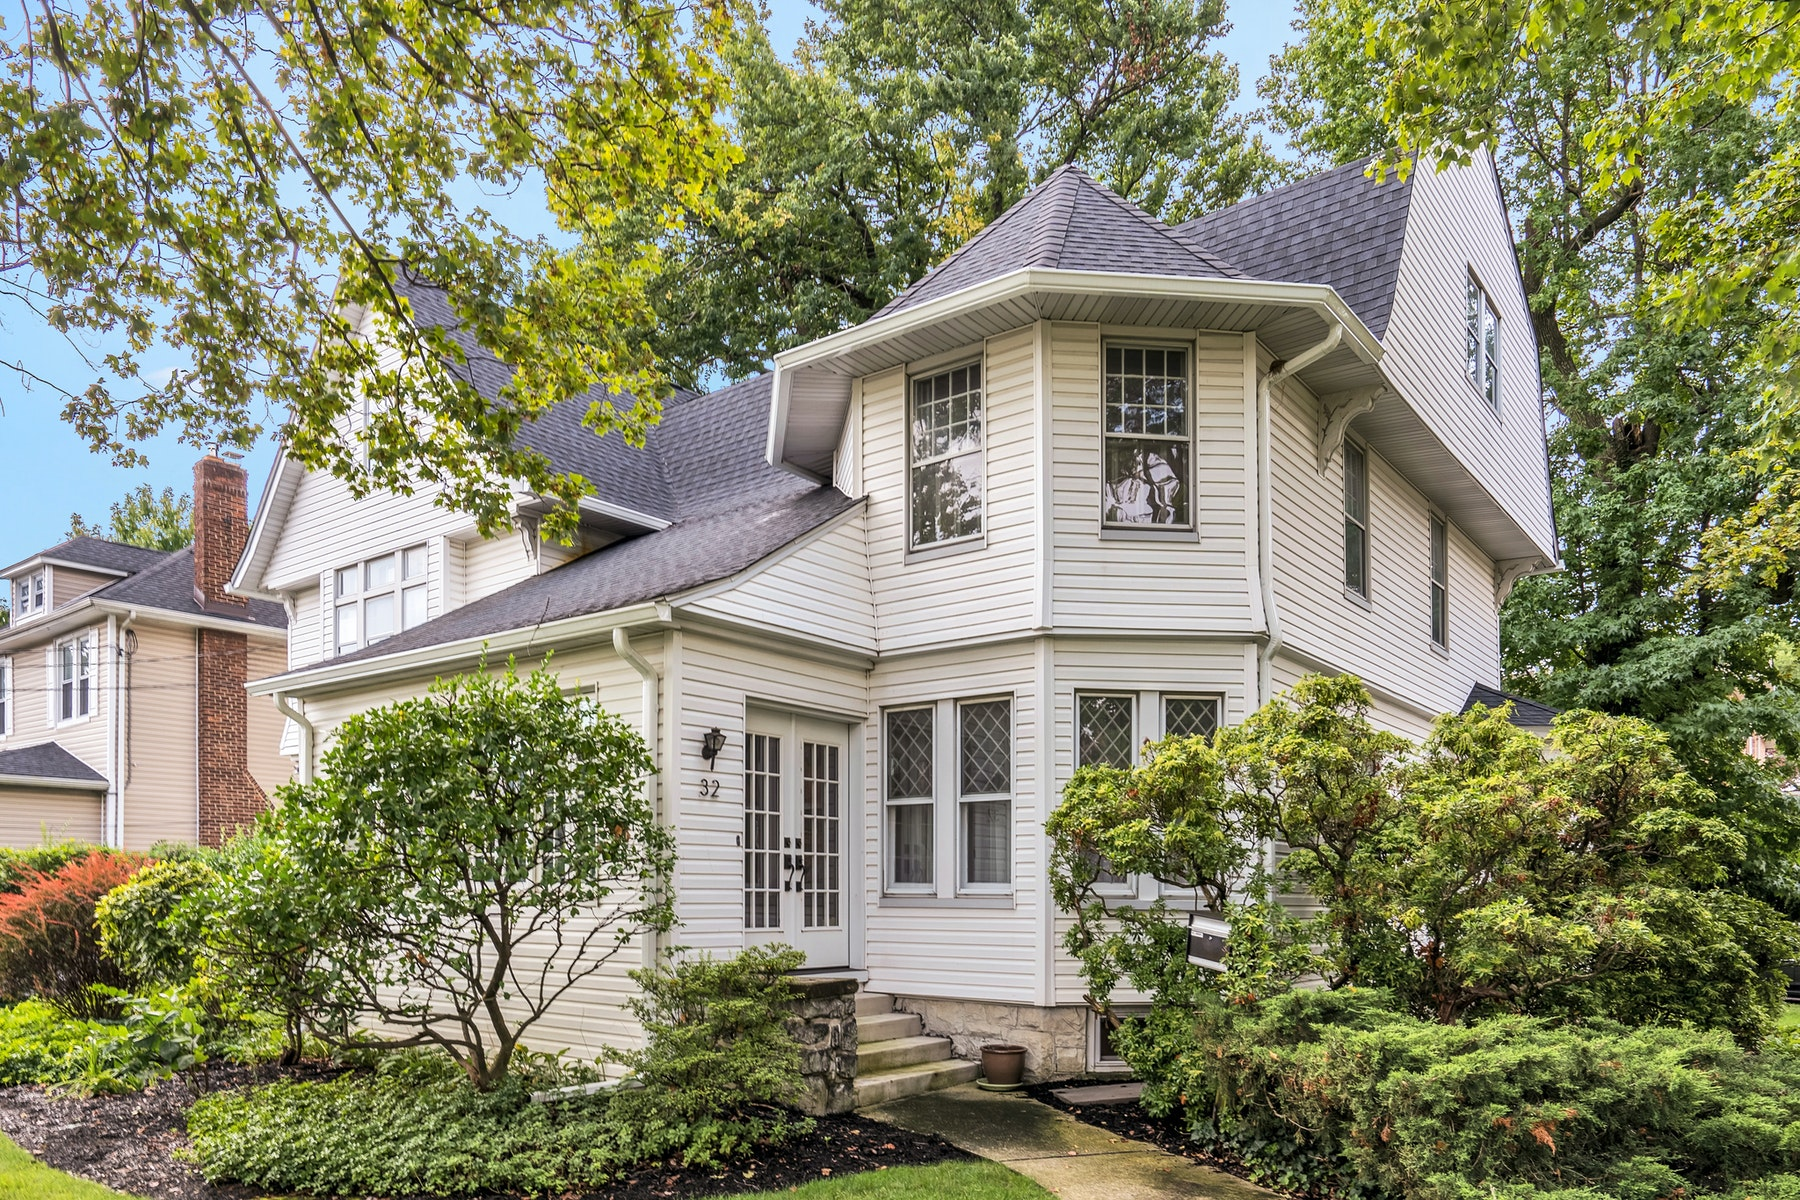 Single Family Homes for Sale at Perched on the Palisades and overlooking NYC 32 Lincoln Avenue, Cliffside Park, New Jersey 07010 United States